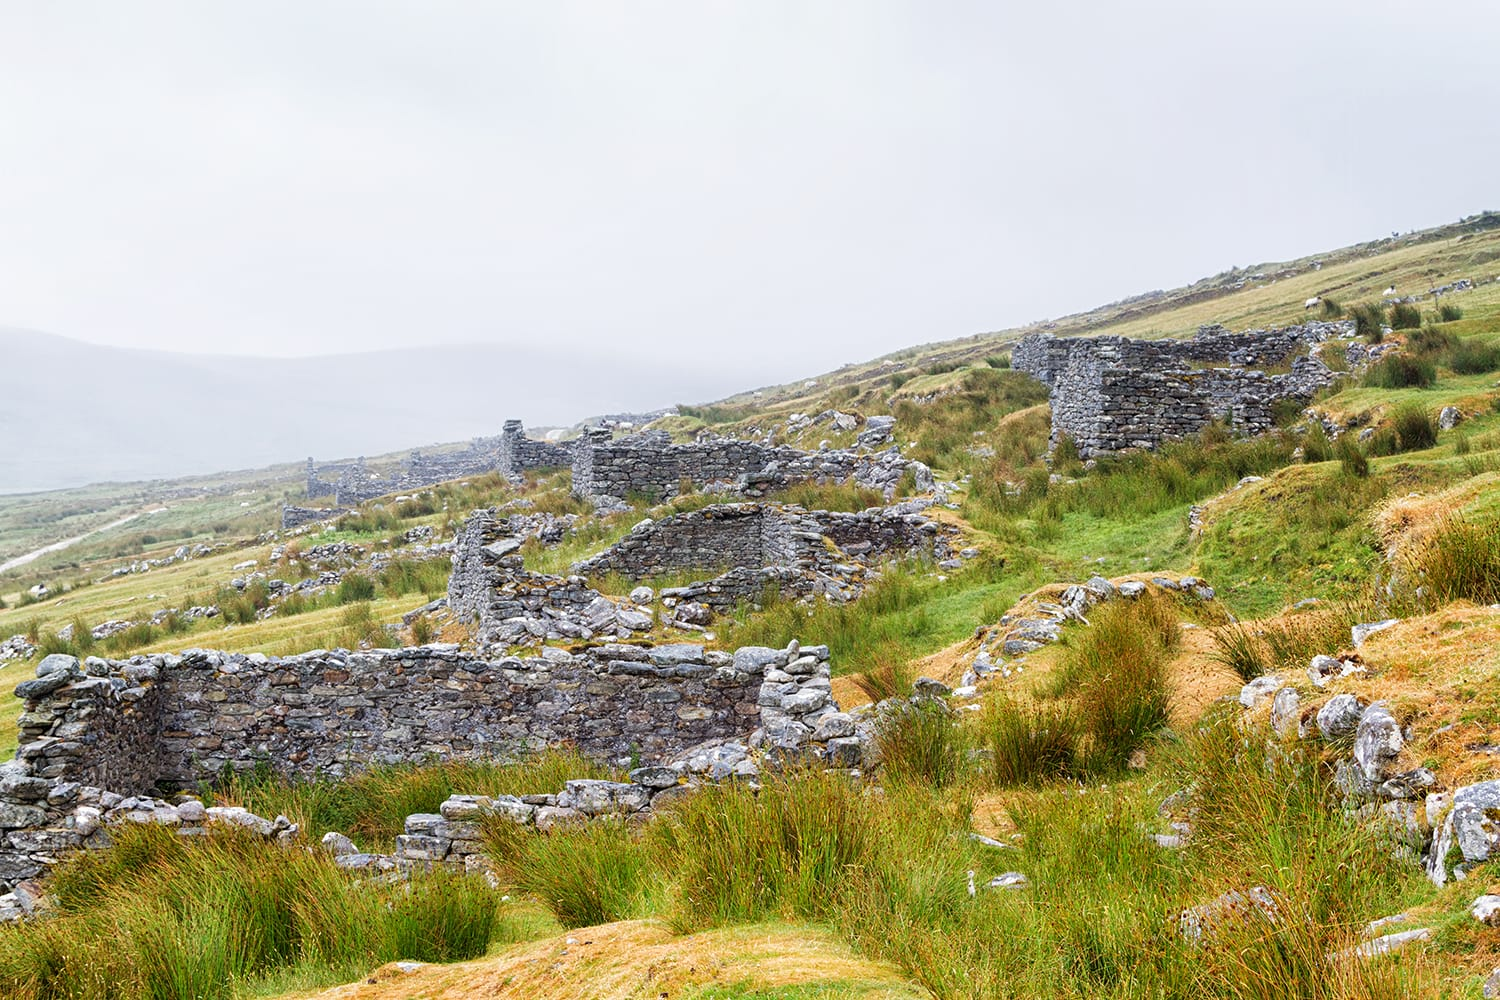 Abandoned dry stone cottages in the deserted village of Slievemore in Achill Island, Ireland